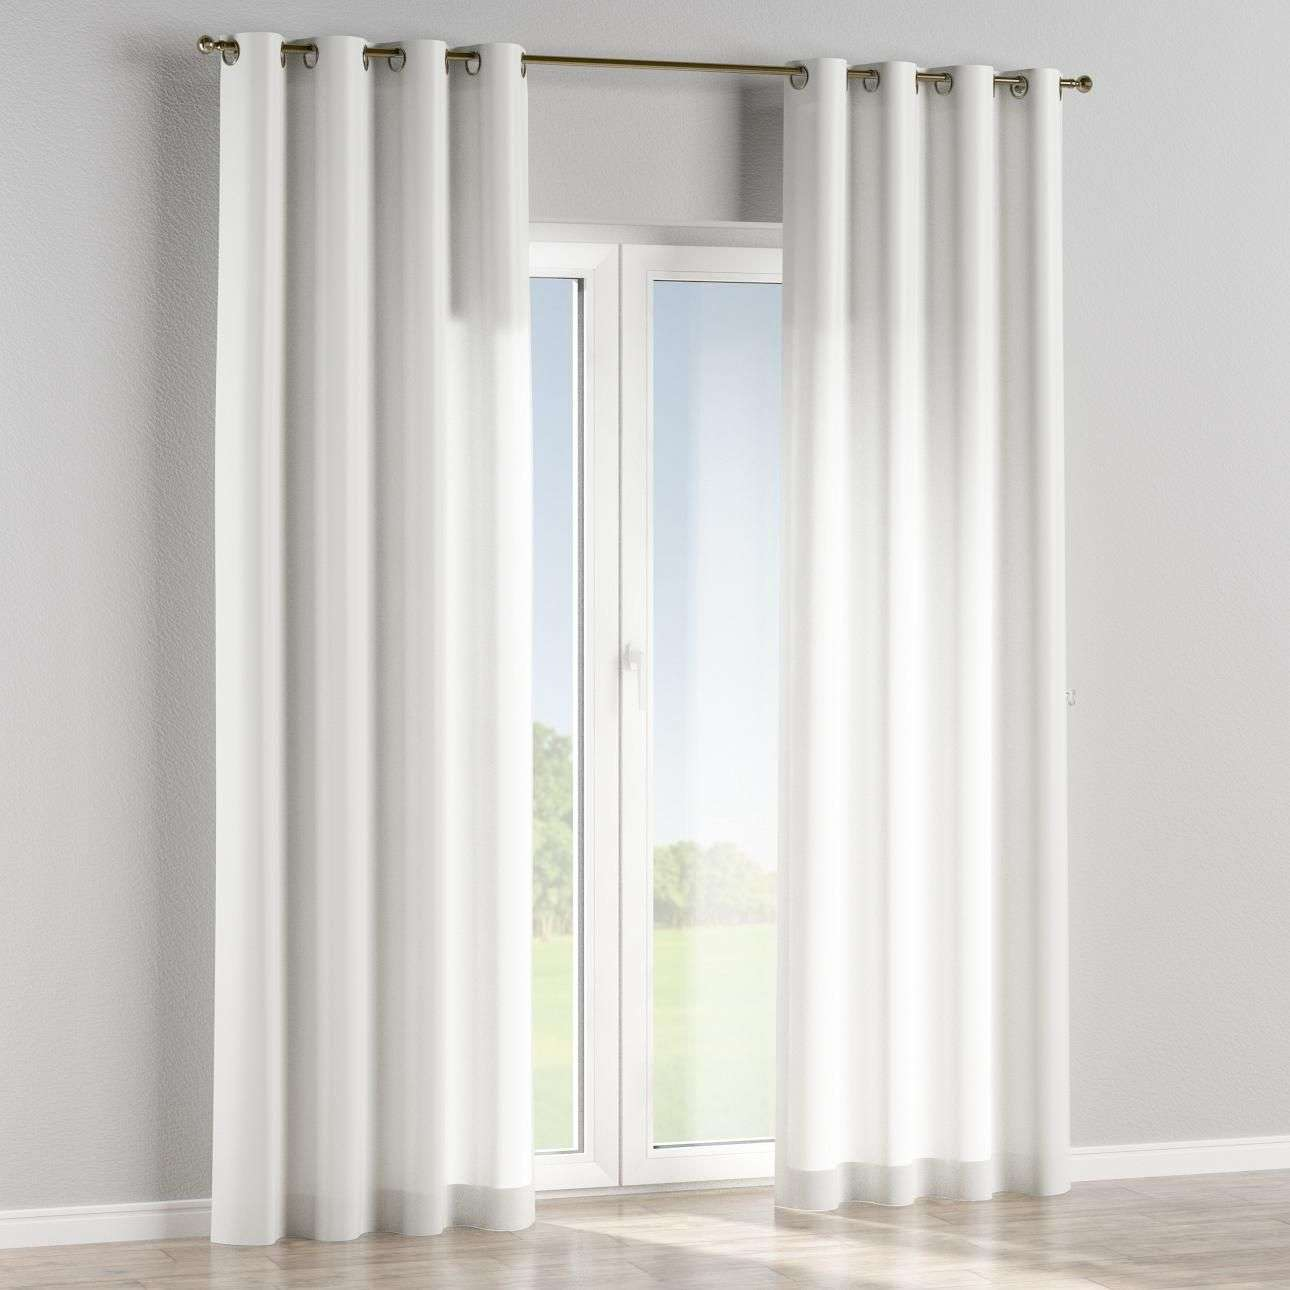 Eyelet lined curtains in collection Christmas , fabric: 630-21